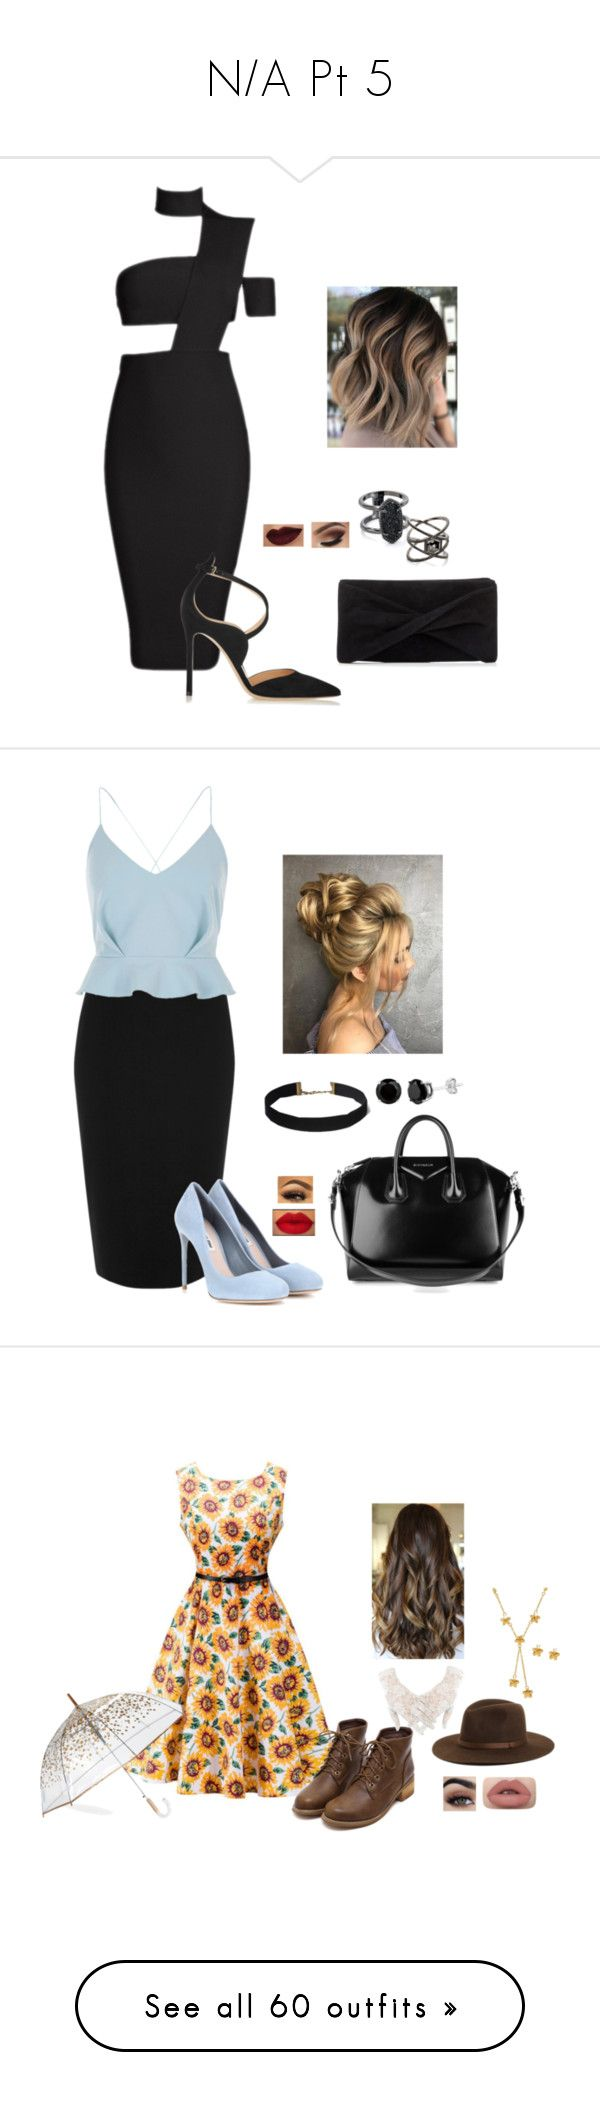 """""""N/A Pt 5"""" by terra-wendy on Polyvore featuring Gianvito Rossi, Reiss, Kendra Scott, Eva Fehren, River Island, Miu Miu, Givenchy, Lord & Taylor, Brixton and ShedRain"""